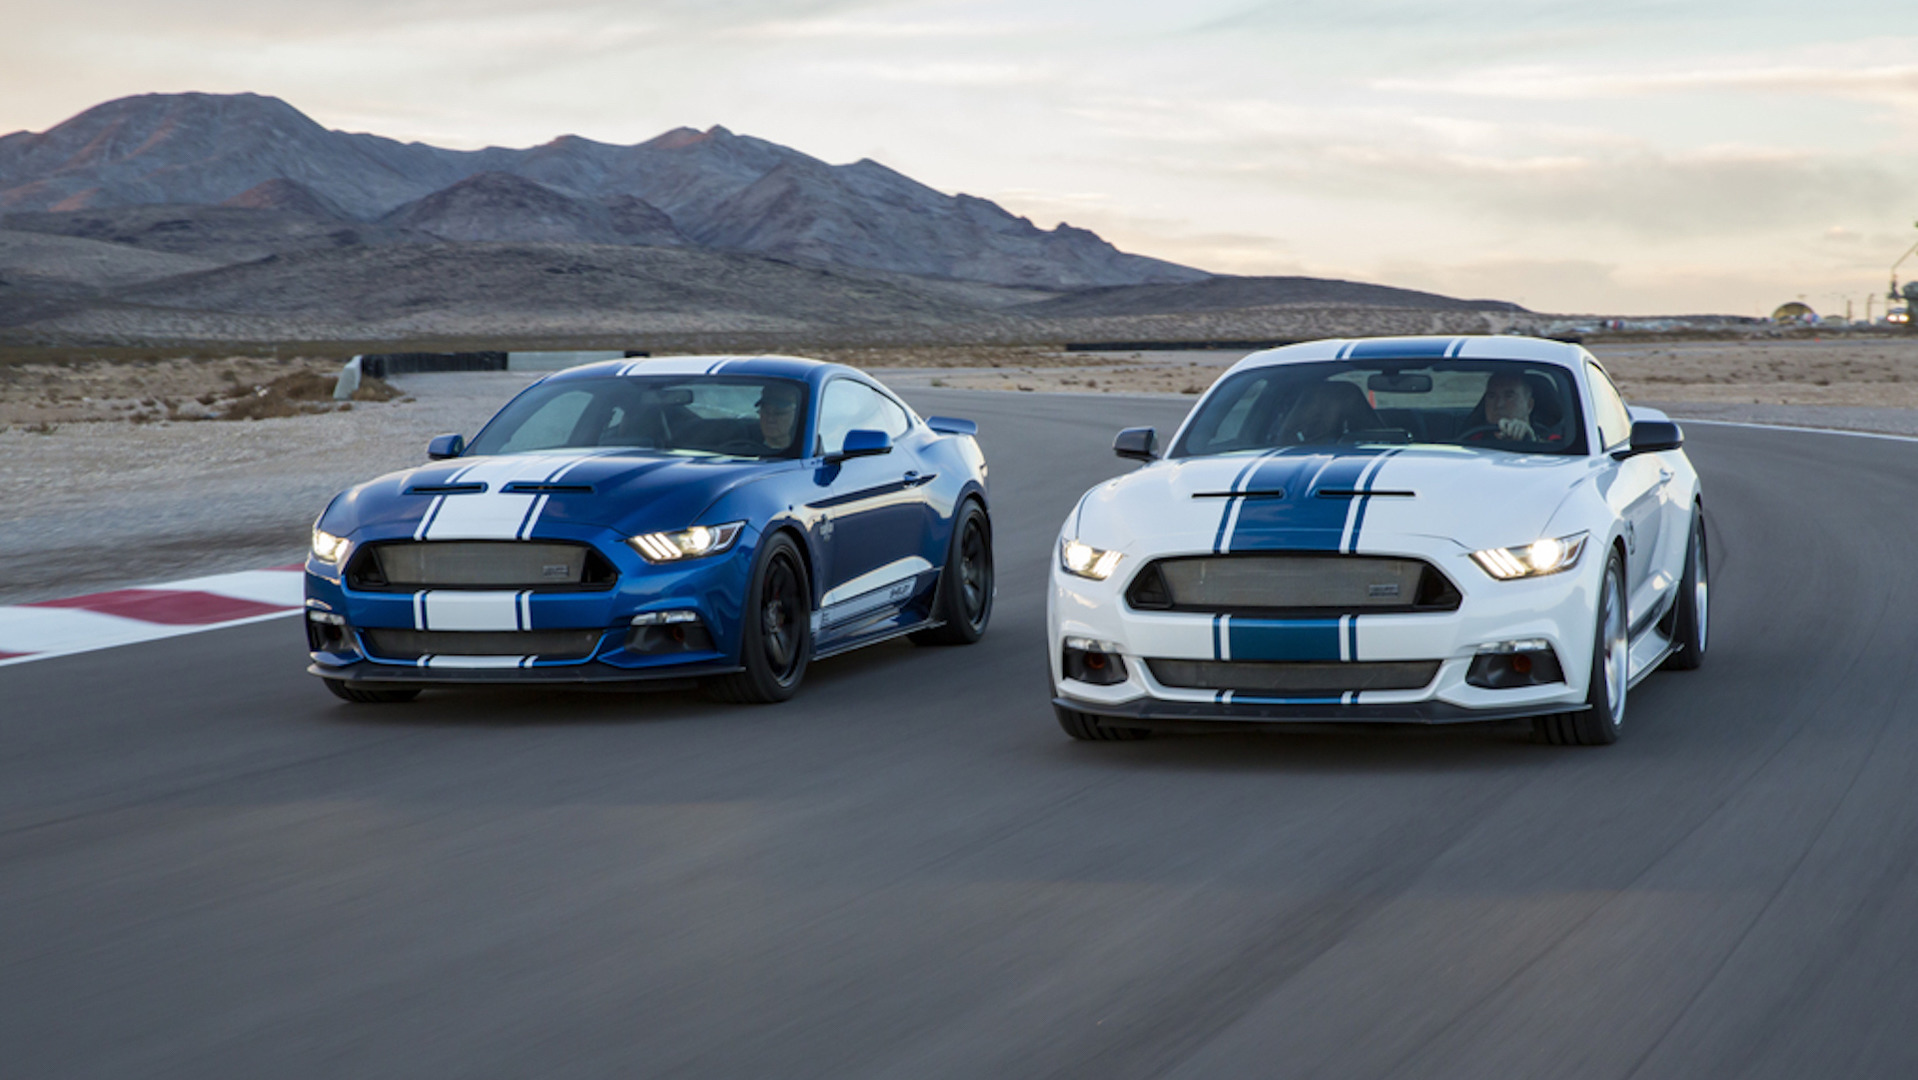 Is Shelby Super Cars Considering Another Vehicle?